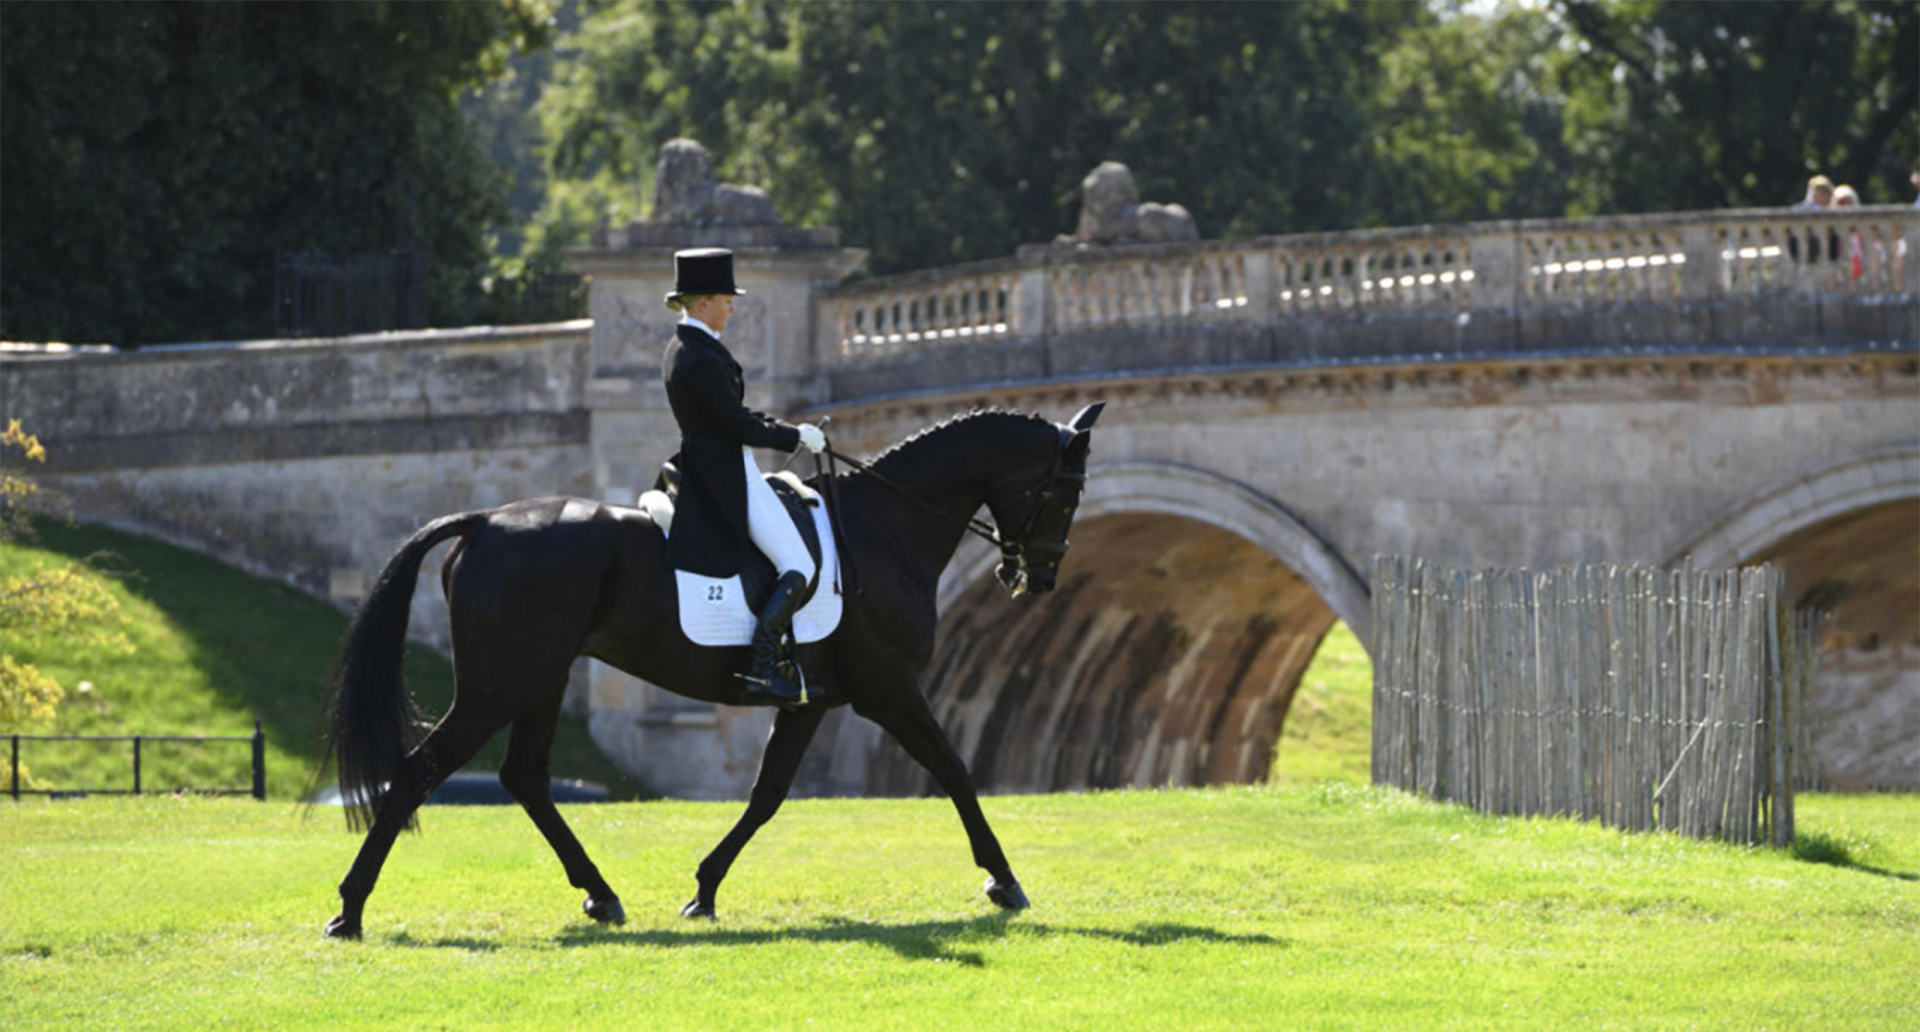 Burghley Horse Trials image 2